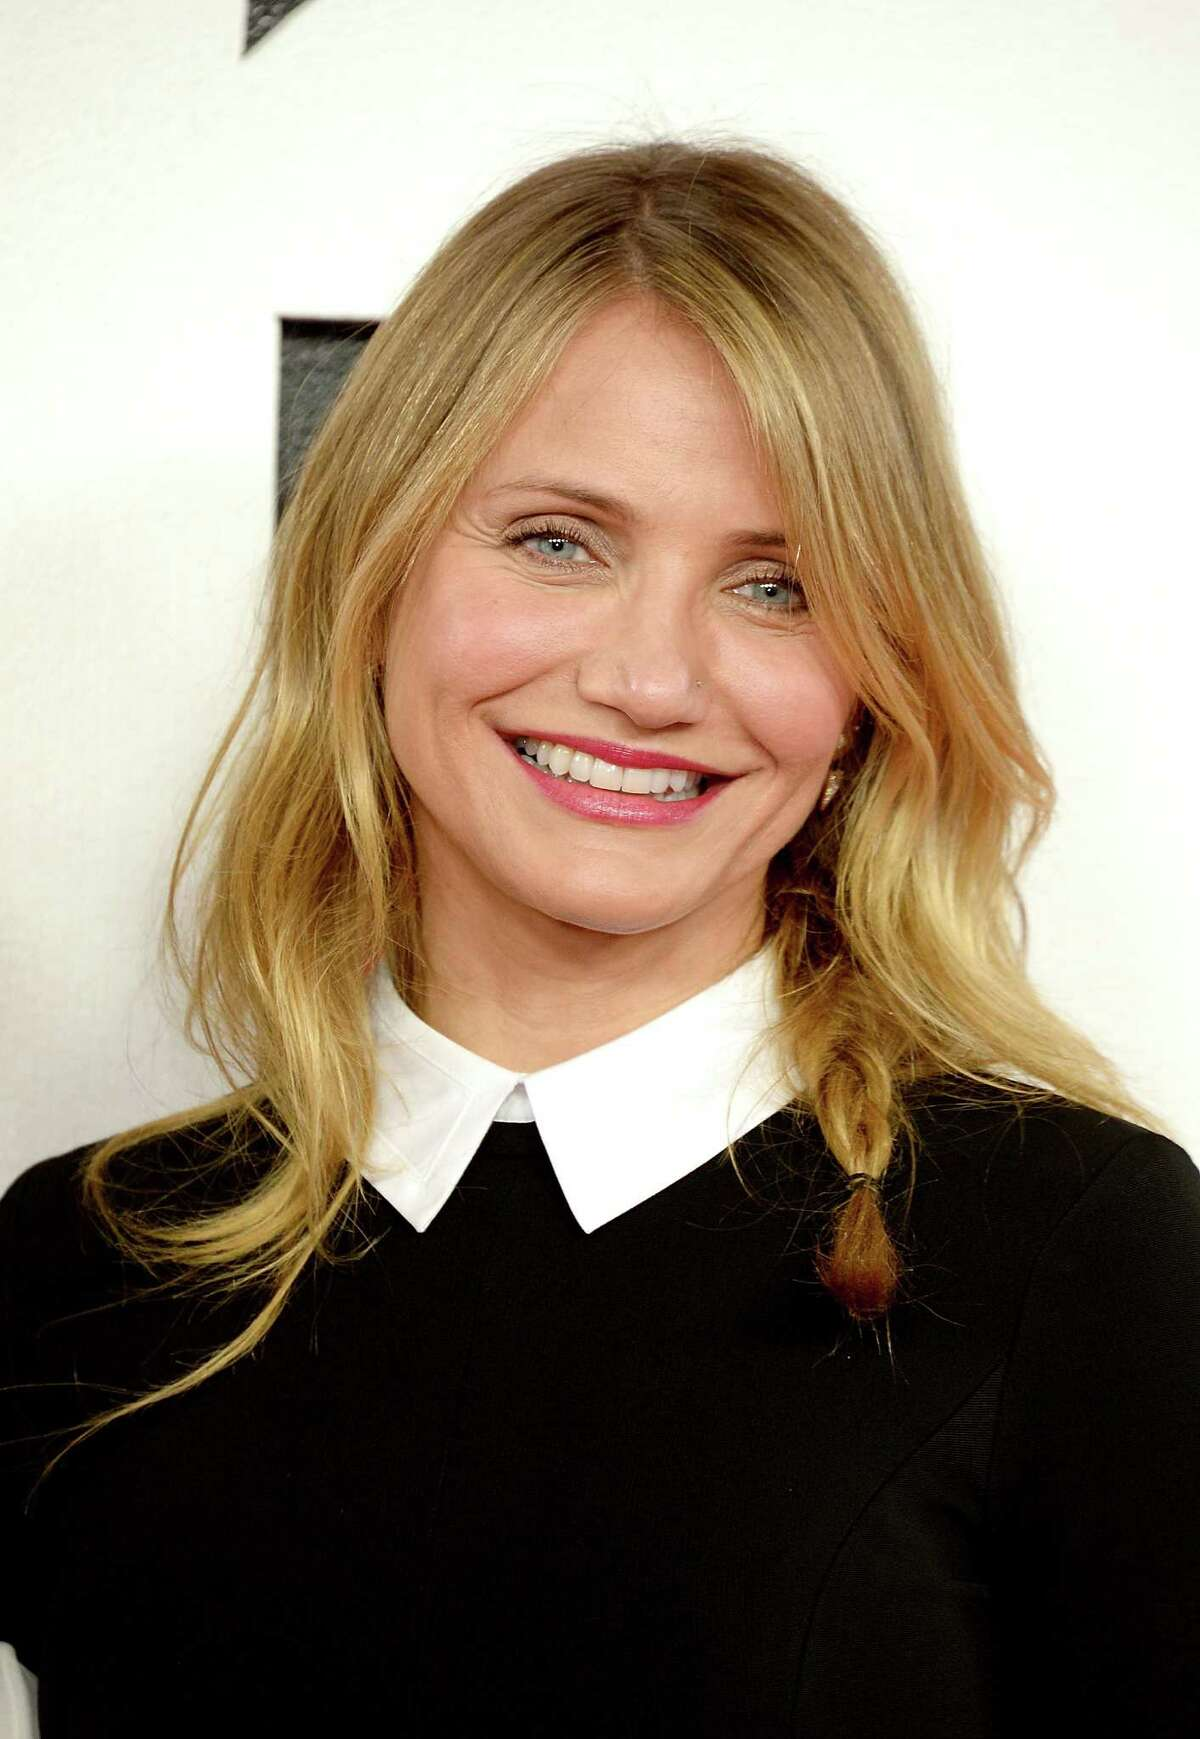 Here's Cameron Diaz, 42, as she appeared Dec. 16, 2014 in London.